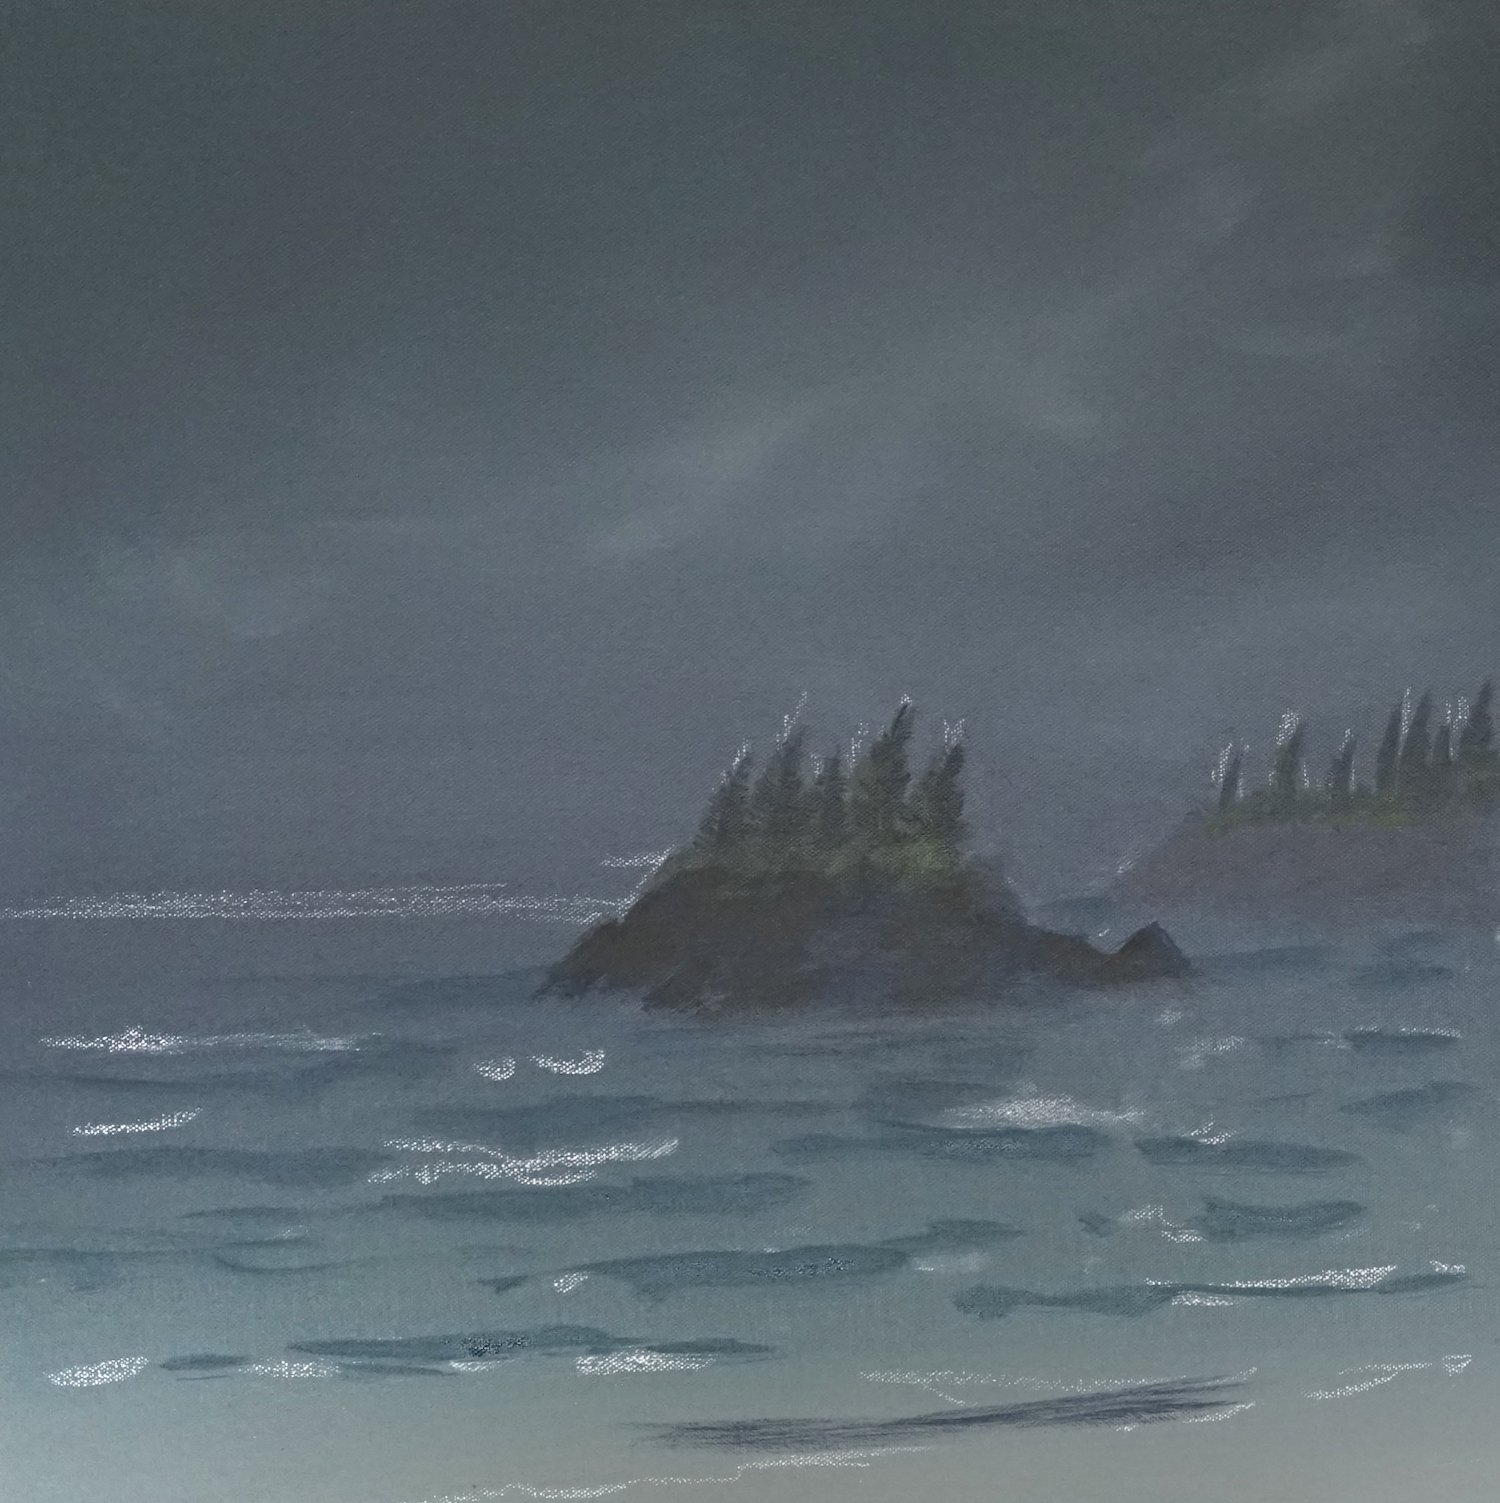 Blocking in the rocks and waves and starting to paint some movement and wind to suggest storm conditions.